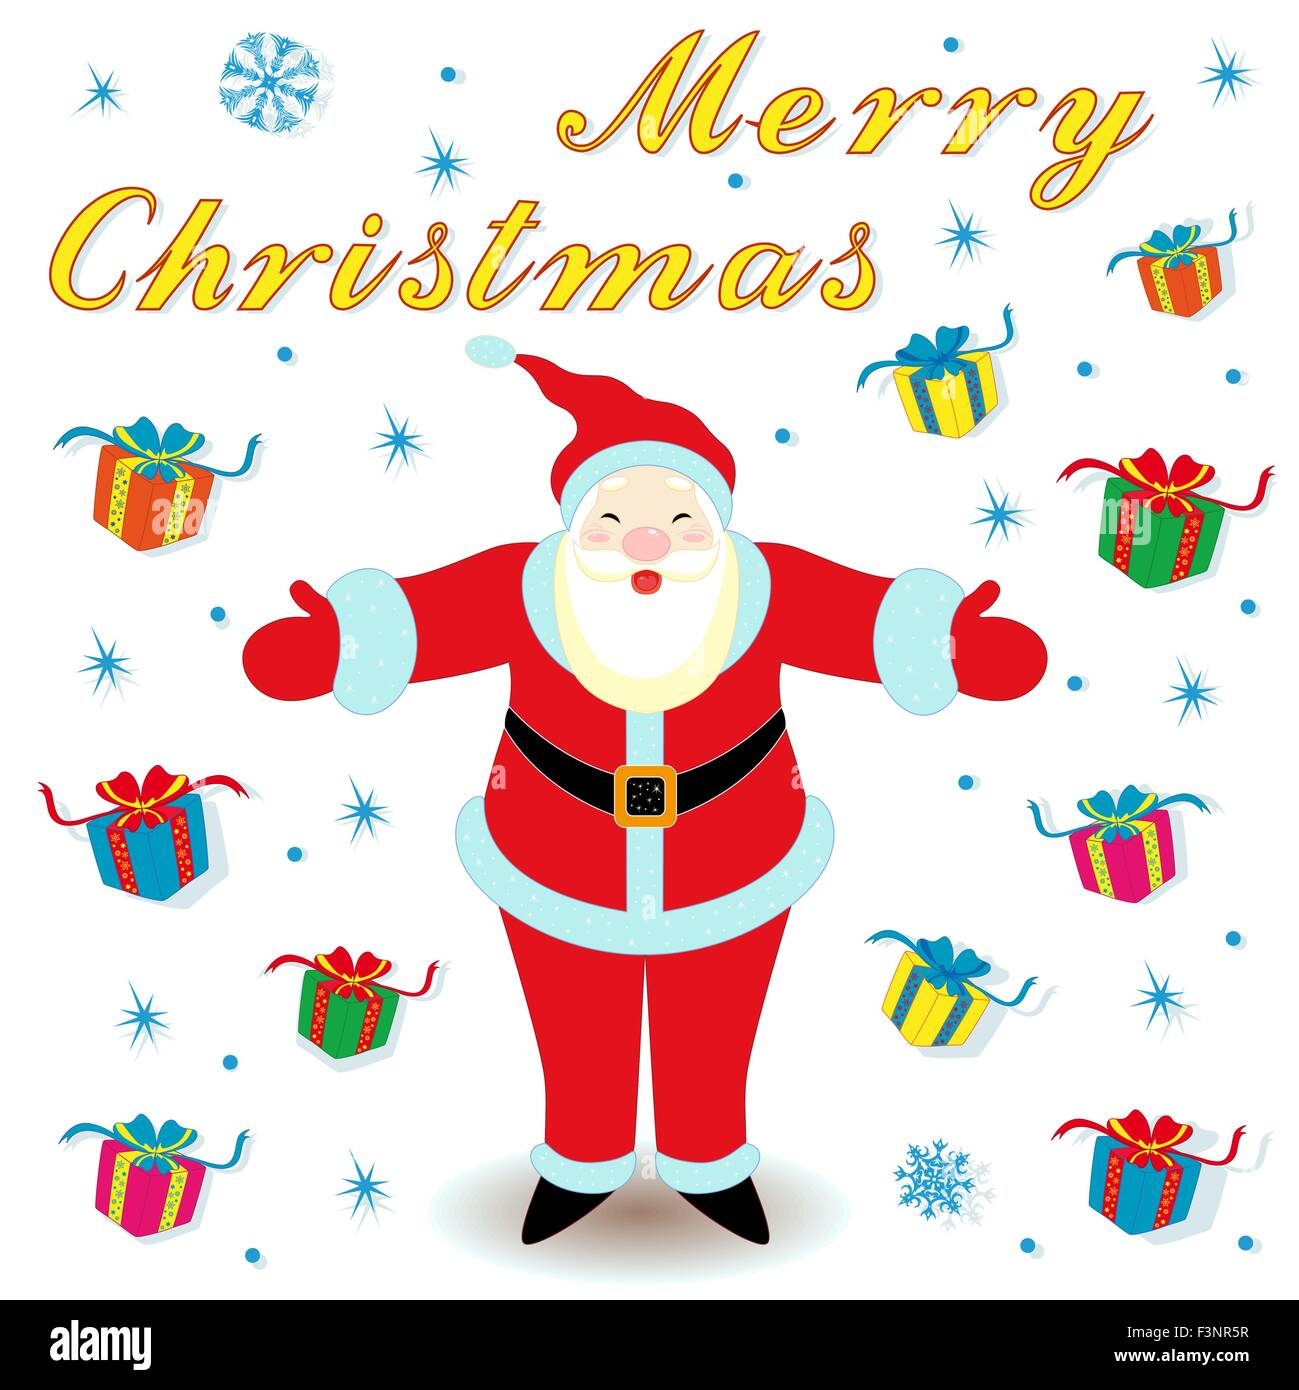 Christmas Day Drawing Images.Merry Christmas With Happy Santa Claus And Many Gifts Hand